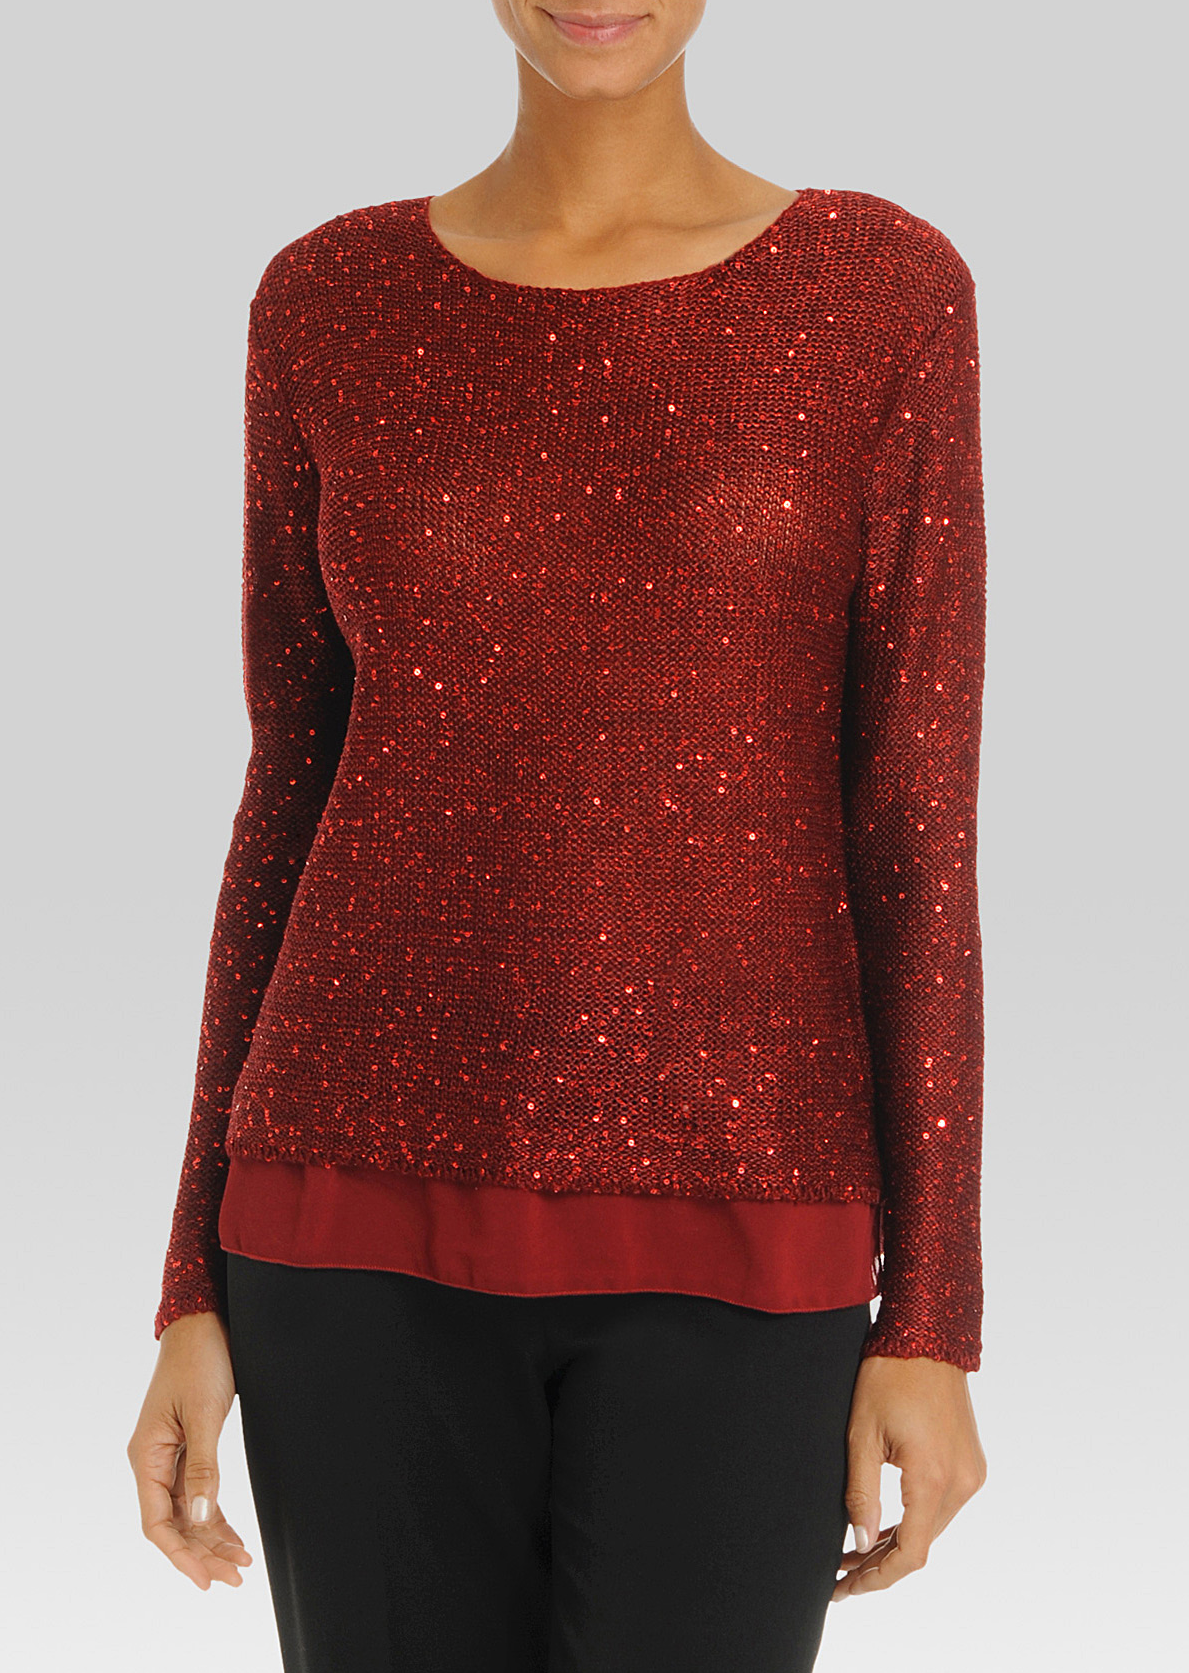 Le pull paillette insertion chiffon 58$